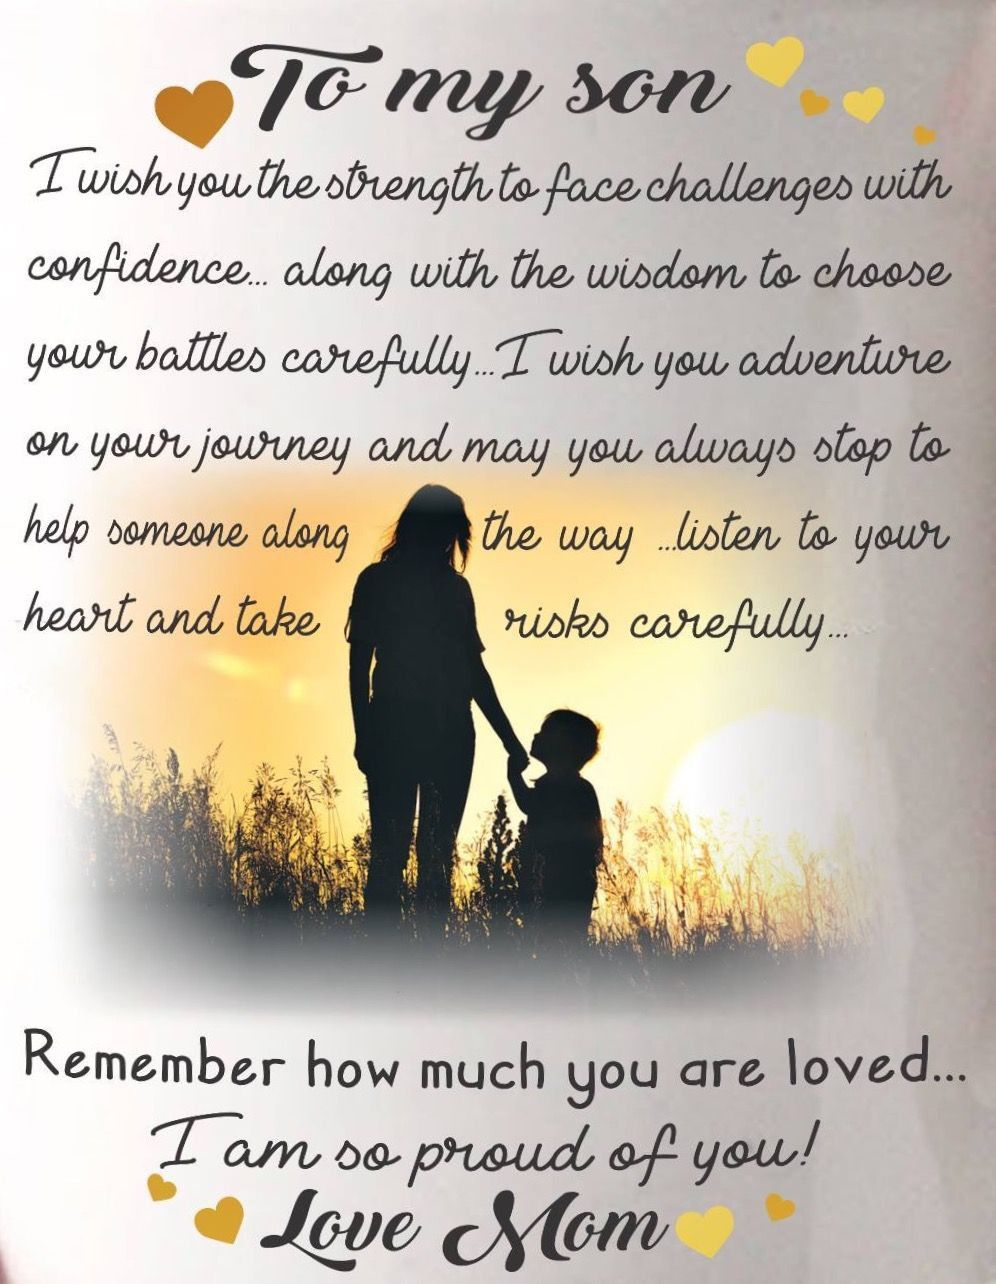 The 20 Best Ideas For Son Birthday Quotes From Mom Son Birthday Quotes From Mom The 20 Best Ideas For Son Son Birthday Quotes Son Quotes My Children Quotes